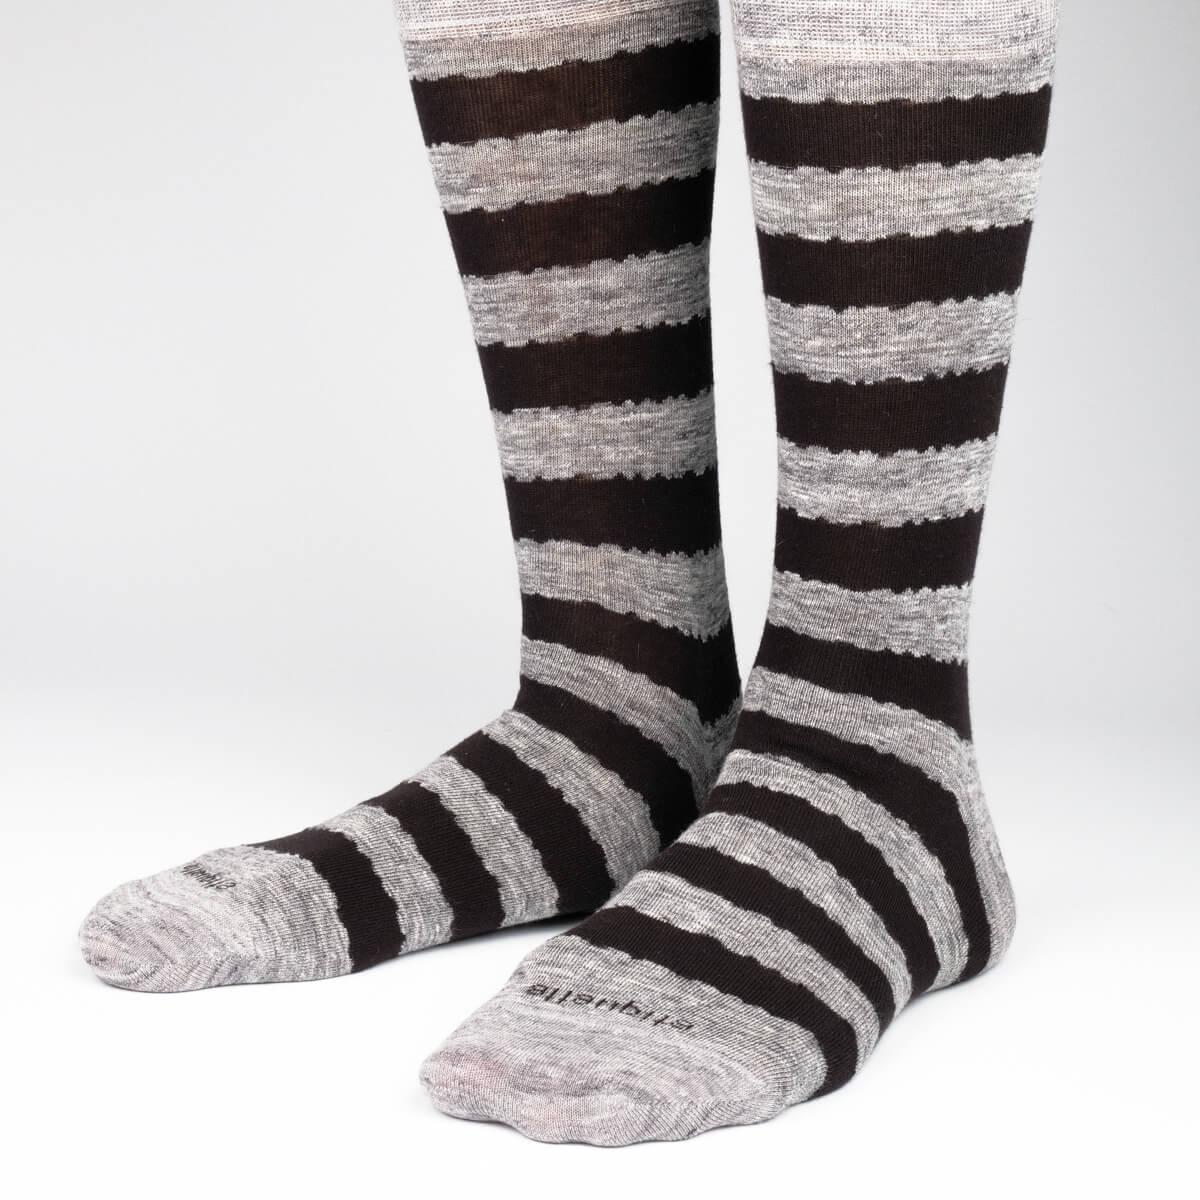 All About Stripes Gift Box - Grey